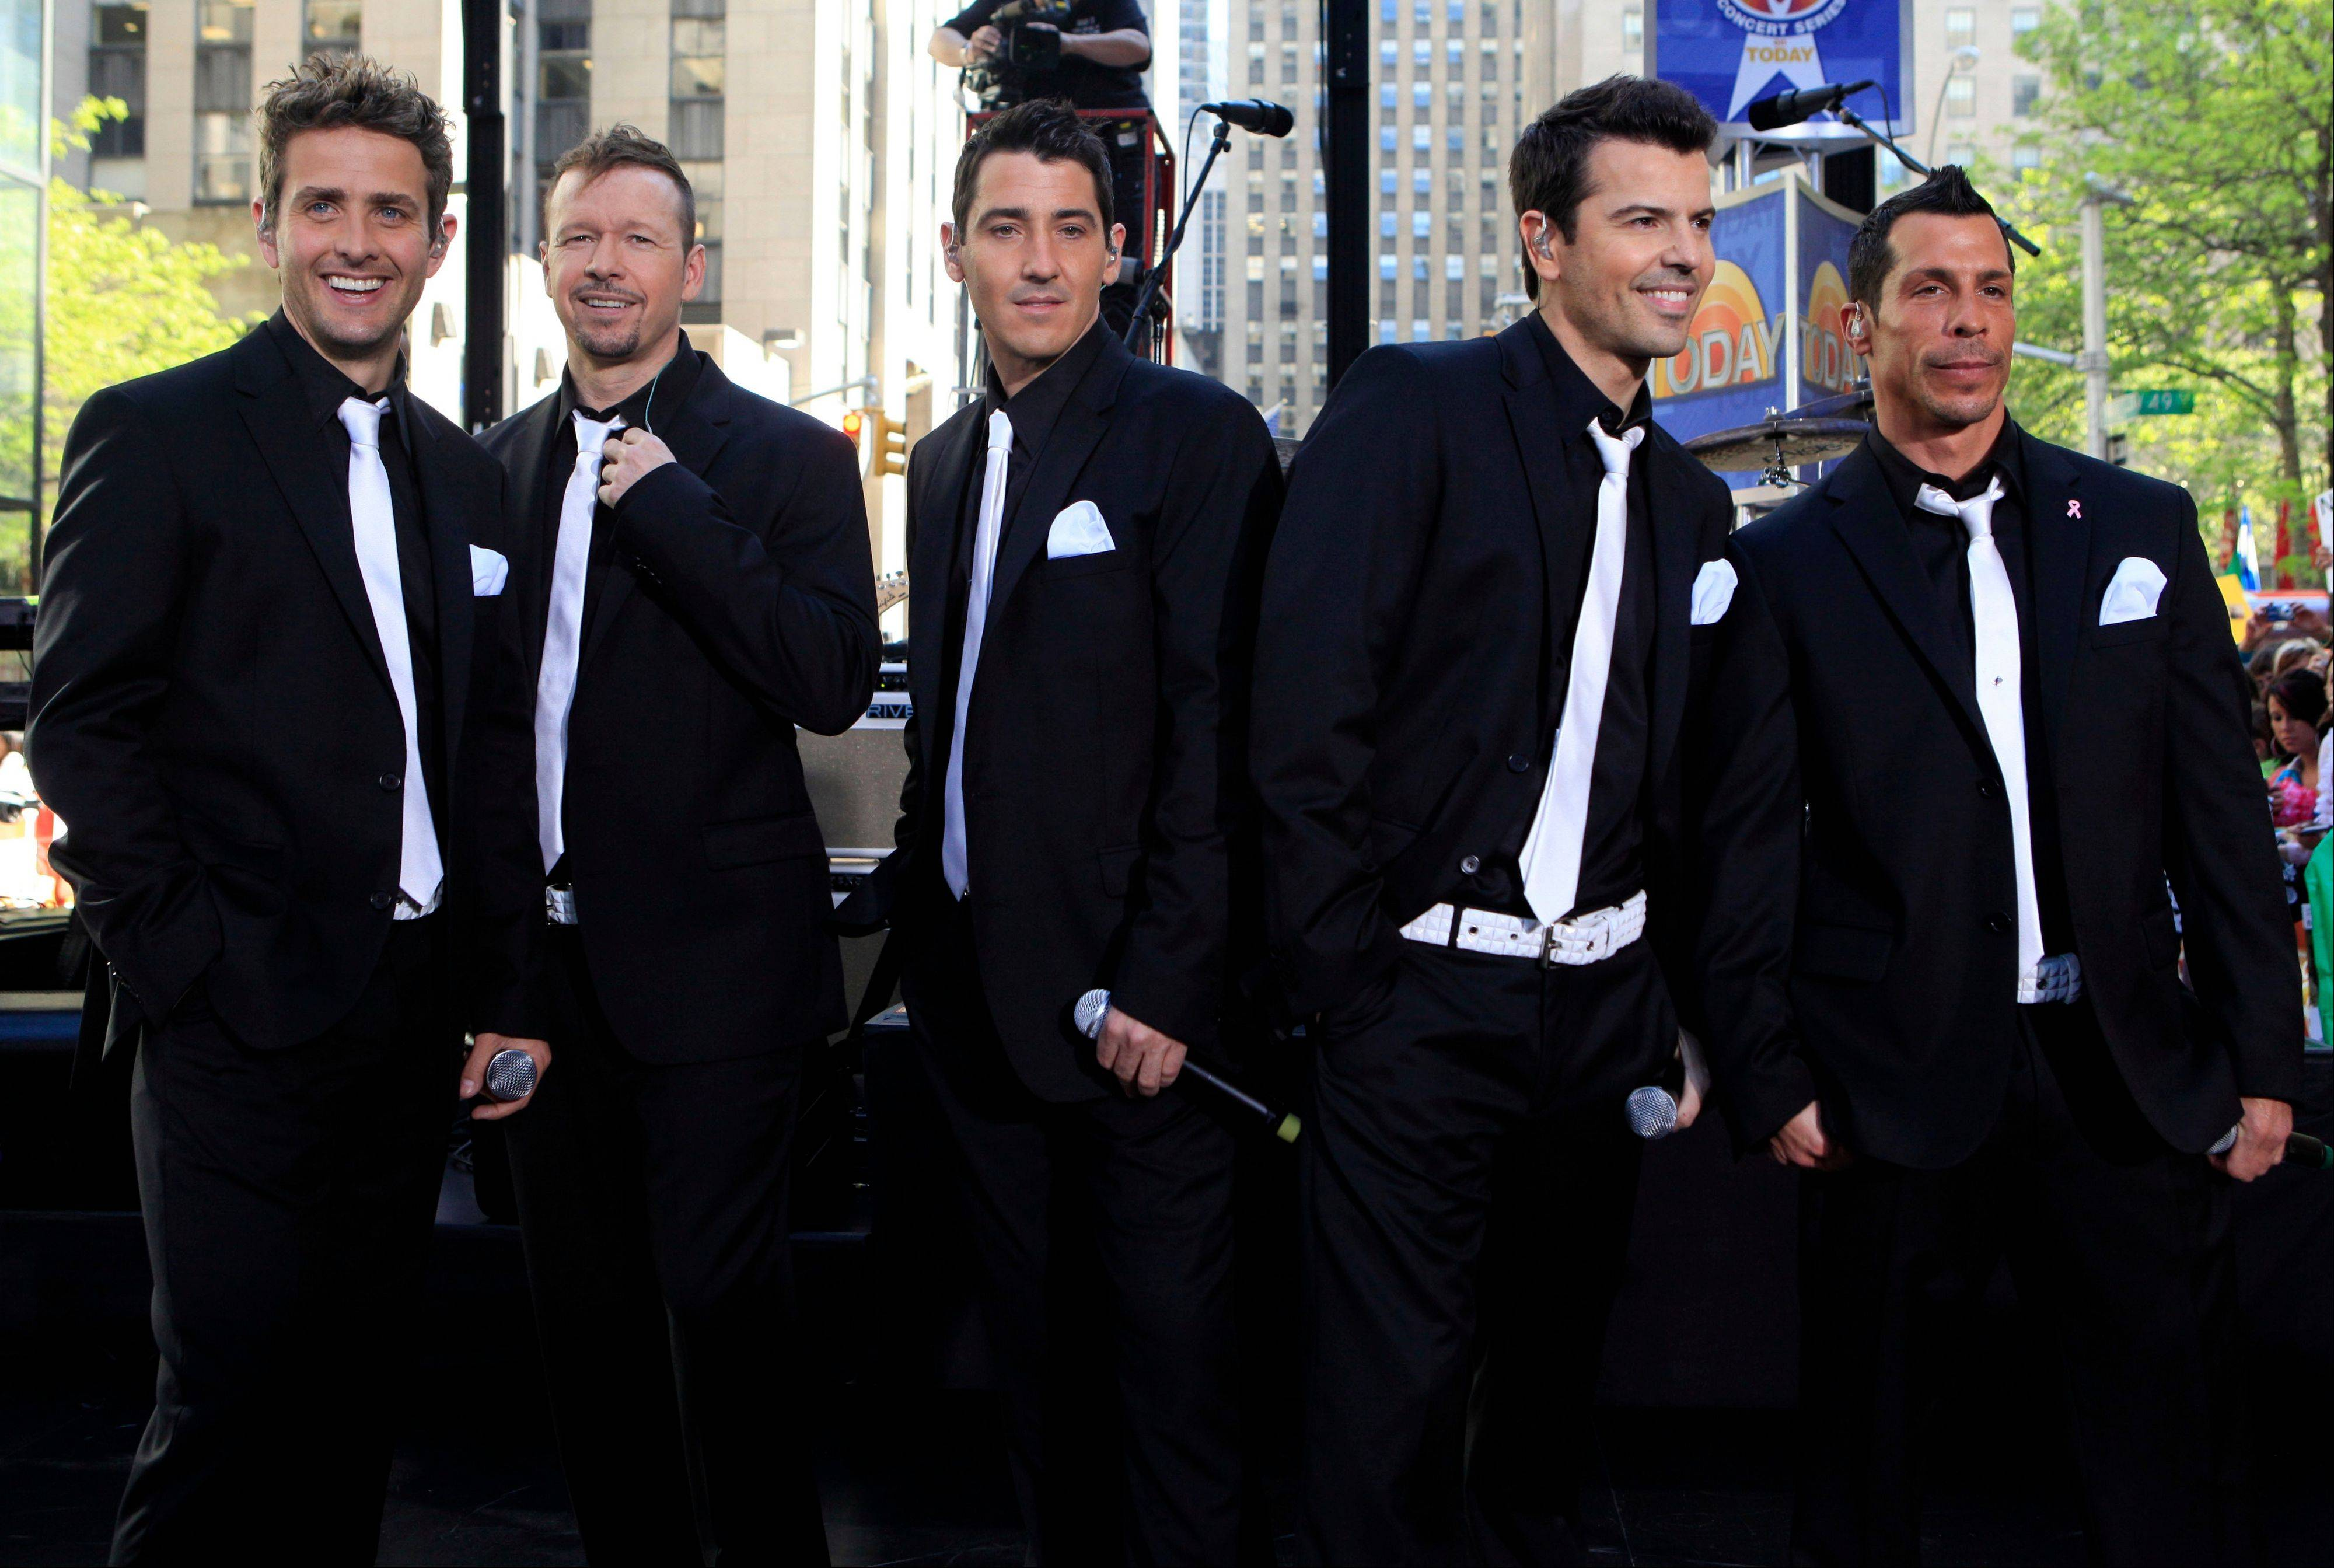 Members of New Kids on the Block — Joey McIntyre, left, Donnie Wahlberg, Jonathan Knight, Jordan Knight and Danny Wood — are teaming up with 98 Degrees and Boyz II Men for a summer tour.